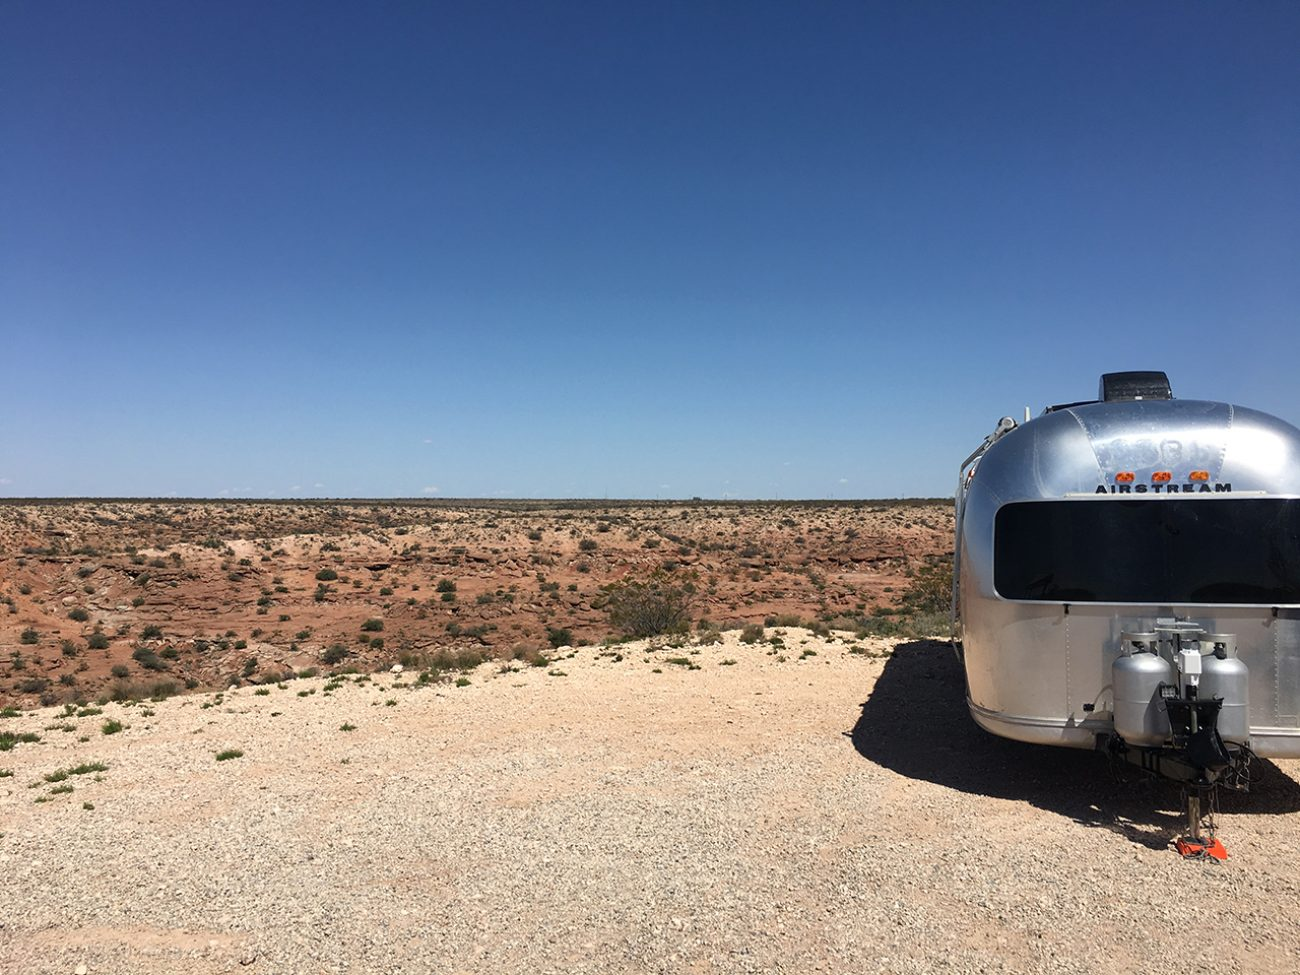 Roswell Empty Airstream